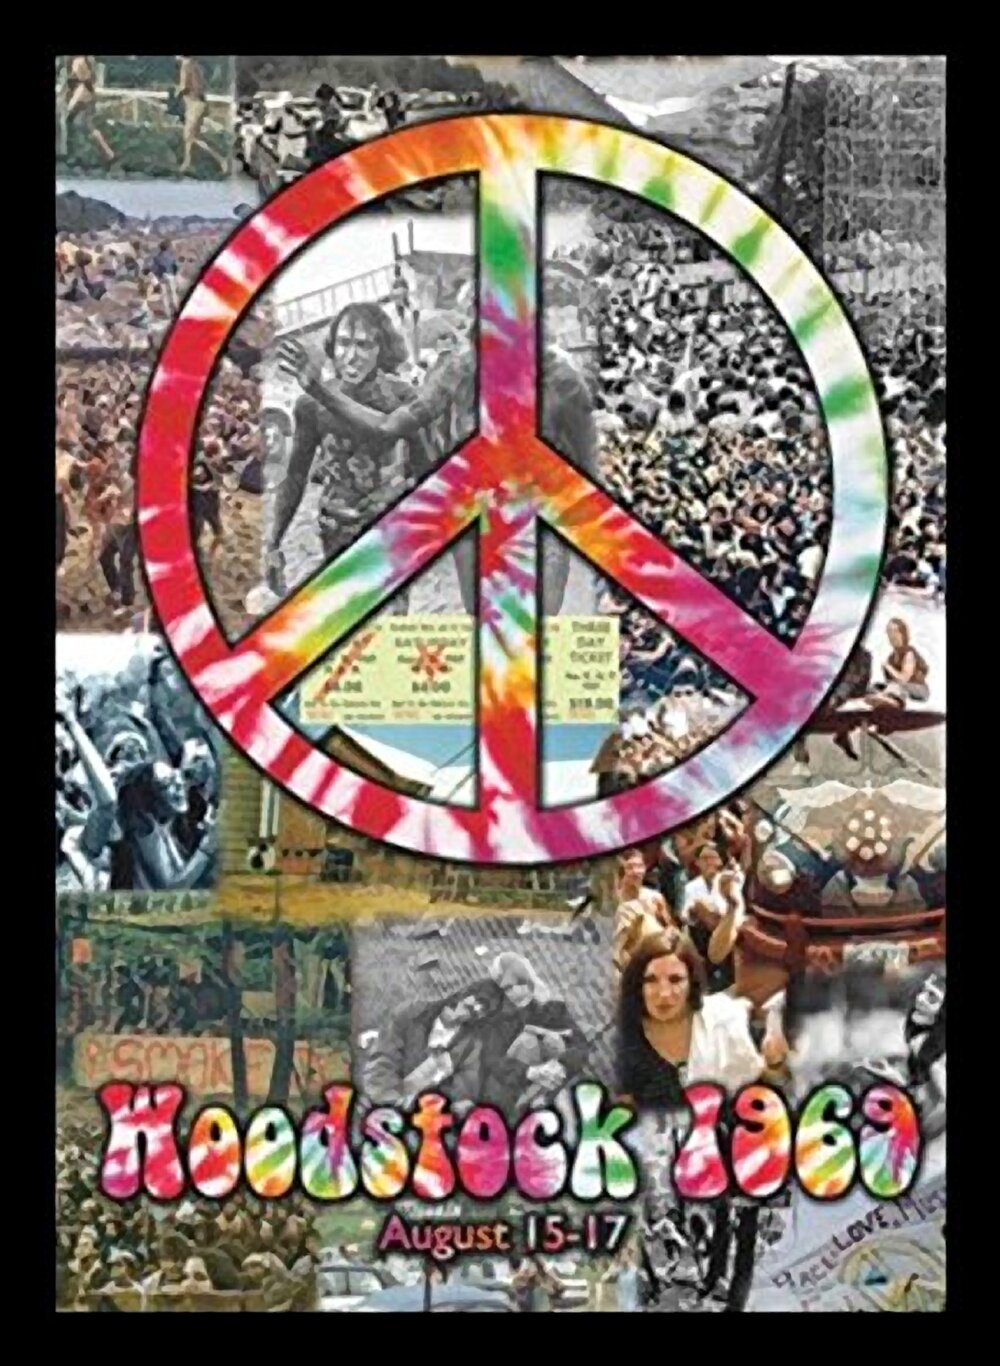 Woodstock and Peace Sign Collage - Picture Frame Graphic Art Print on Paper